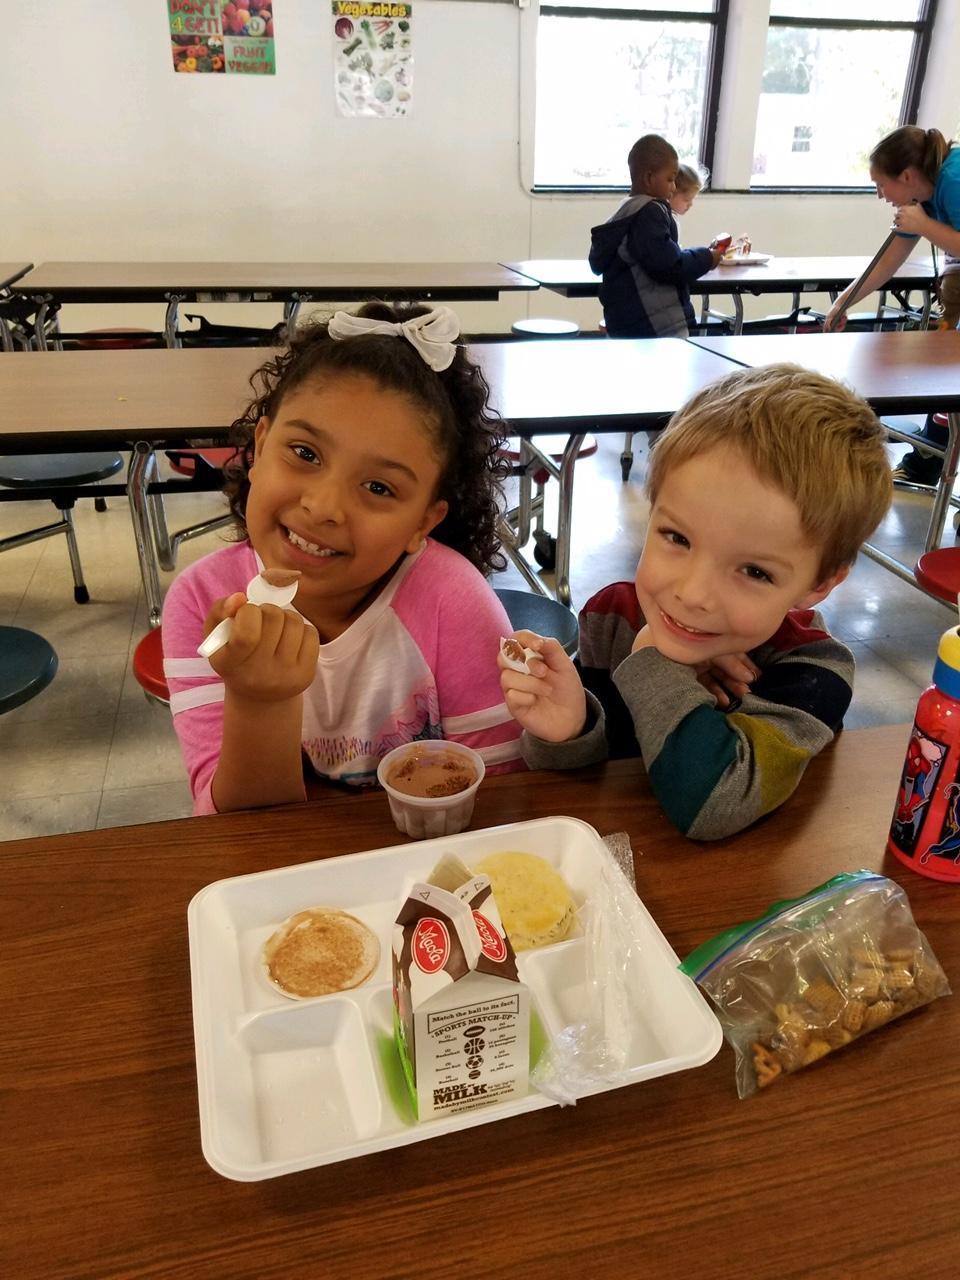 Lunch room picture of a boy and a girl eating